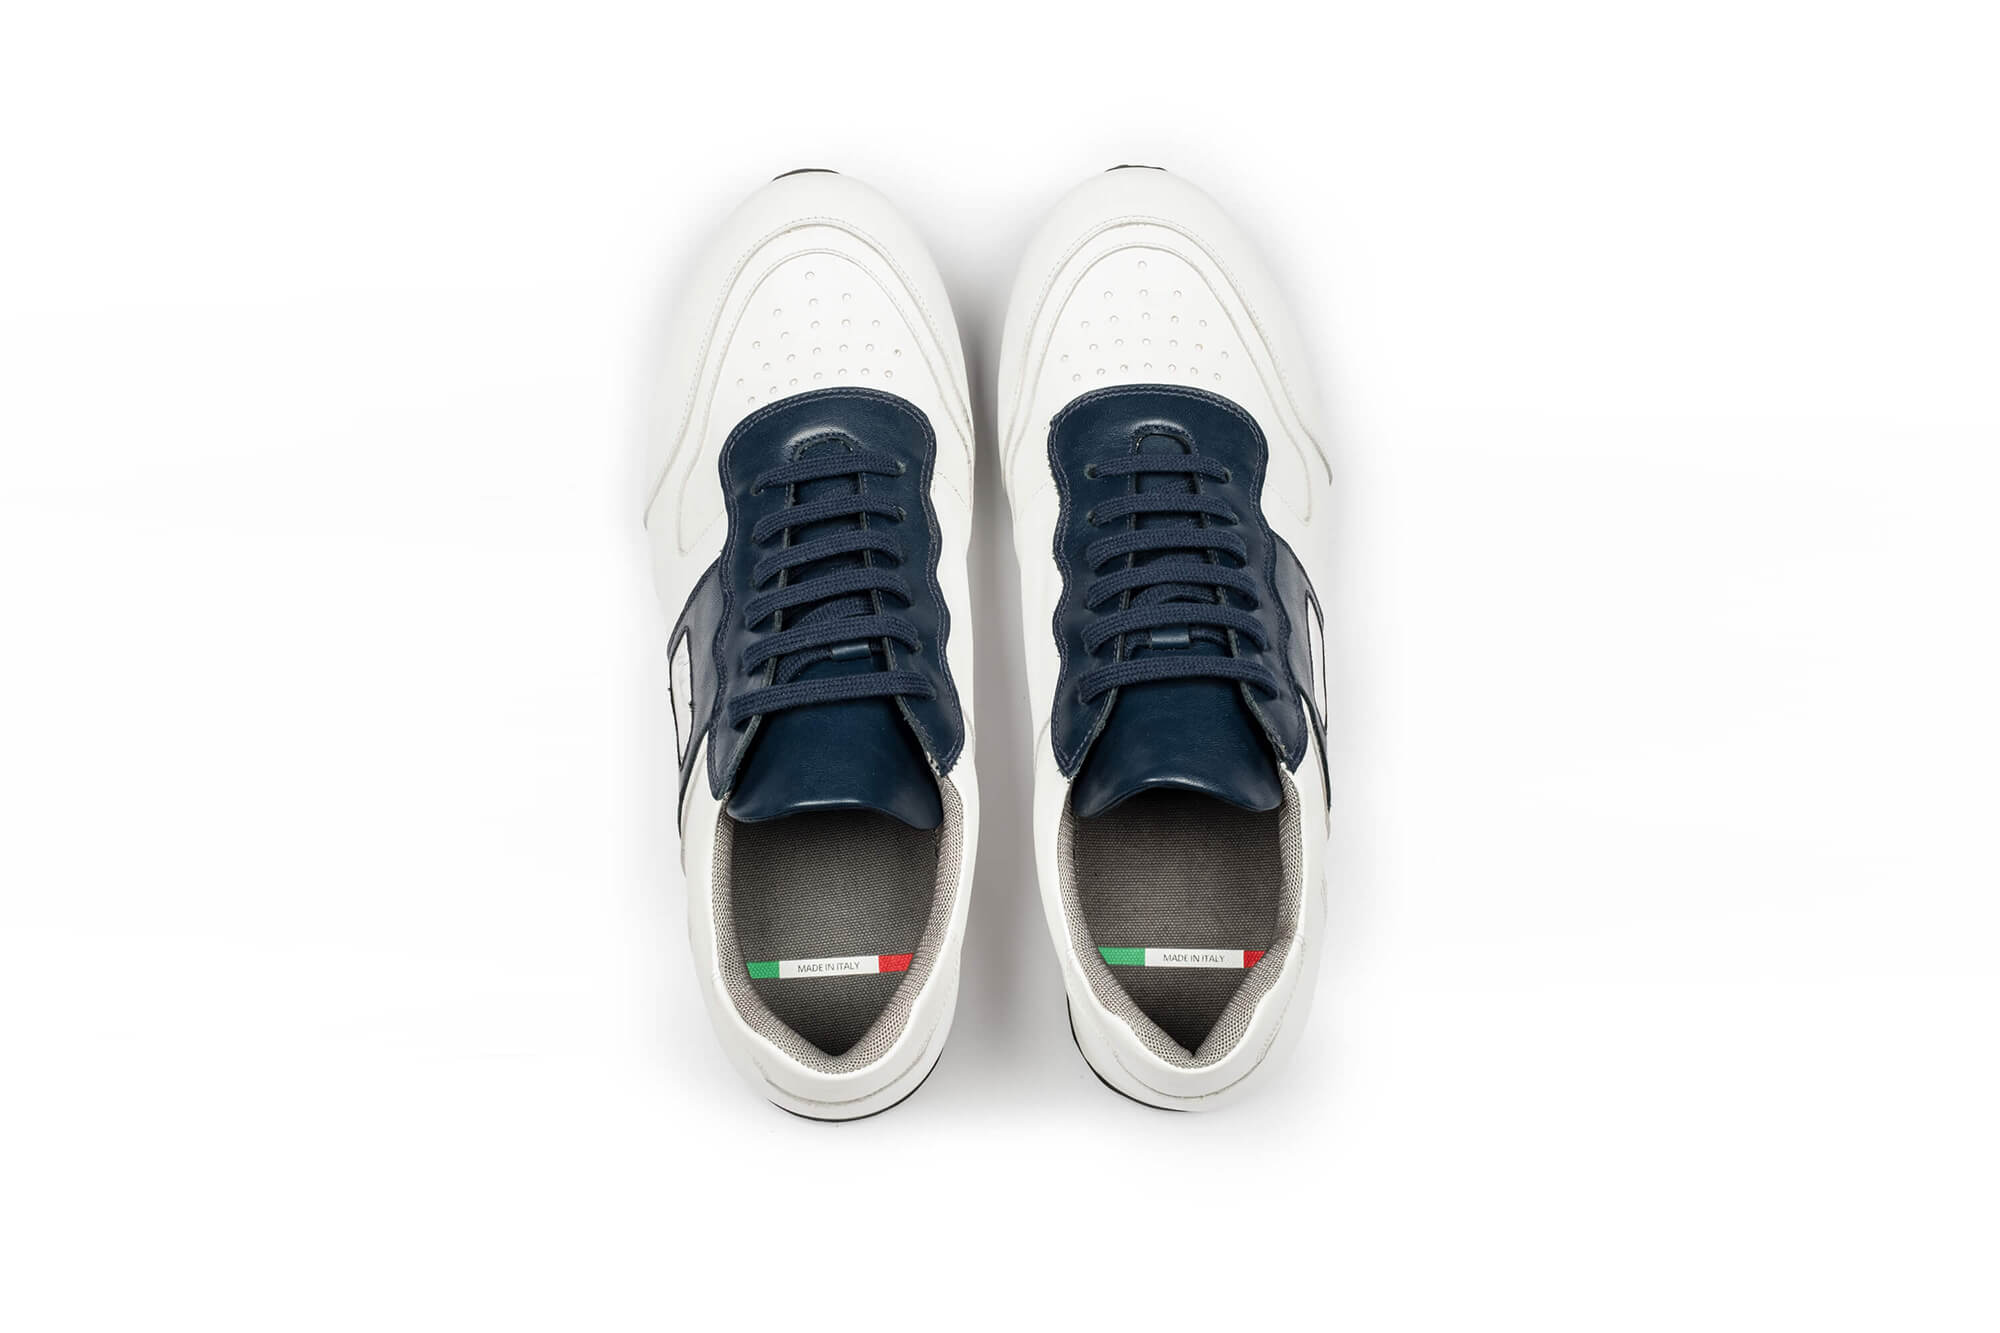 4da149b93f43 Almo customized made in Italy sneakers by Jose Almonte